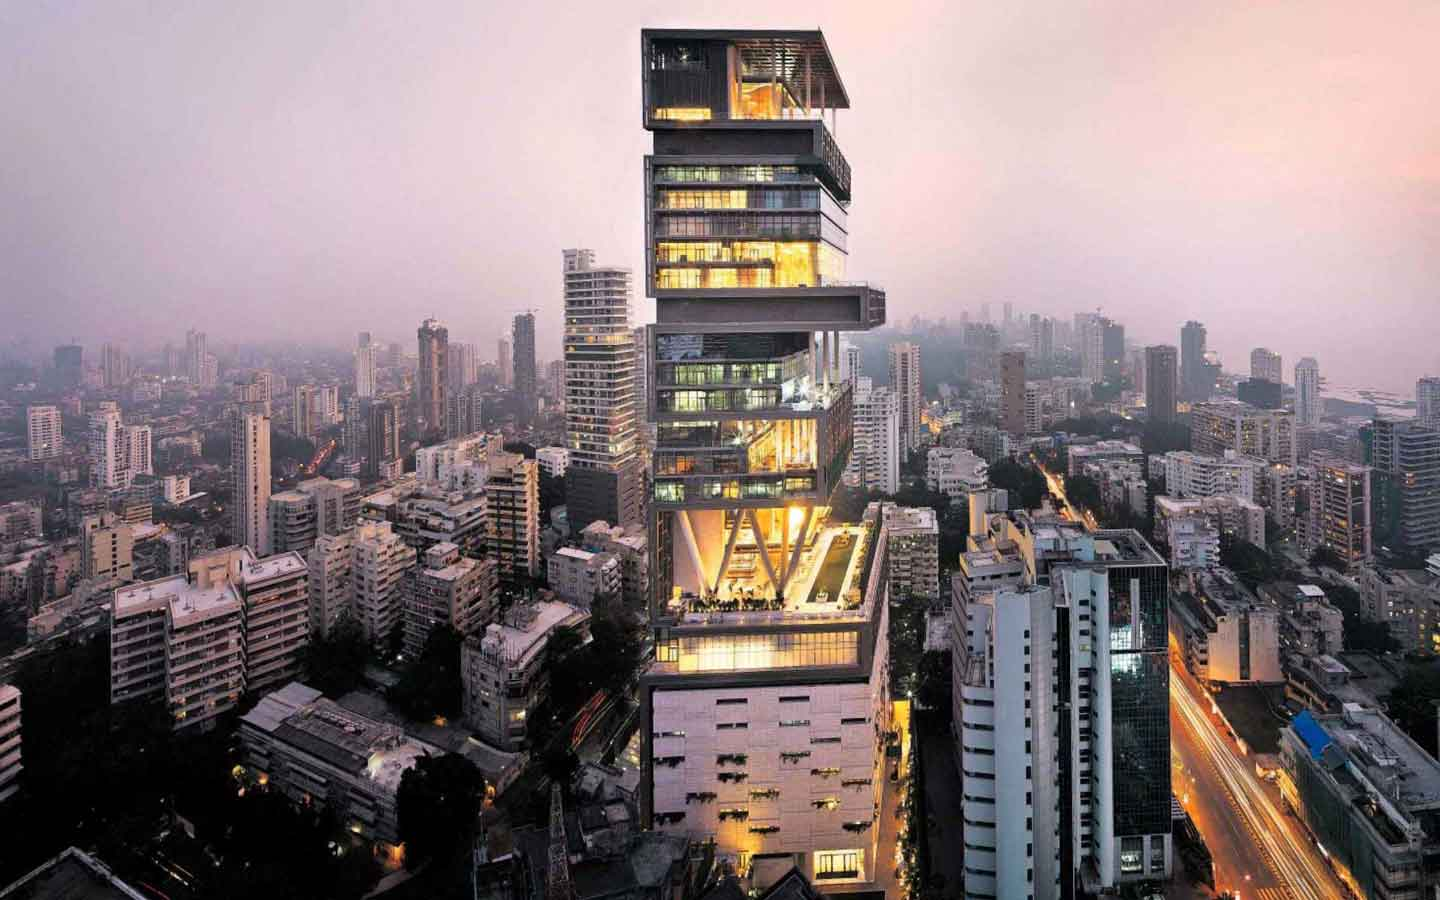 Antilia, Mumbai, India